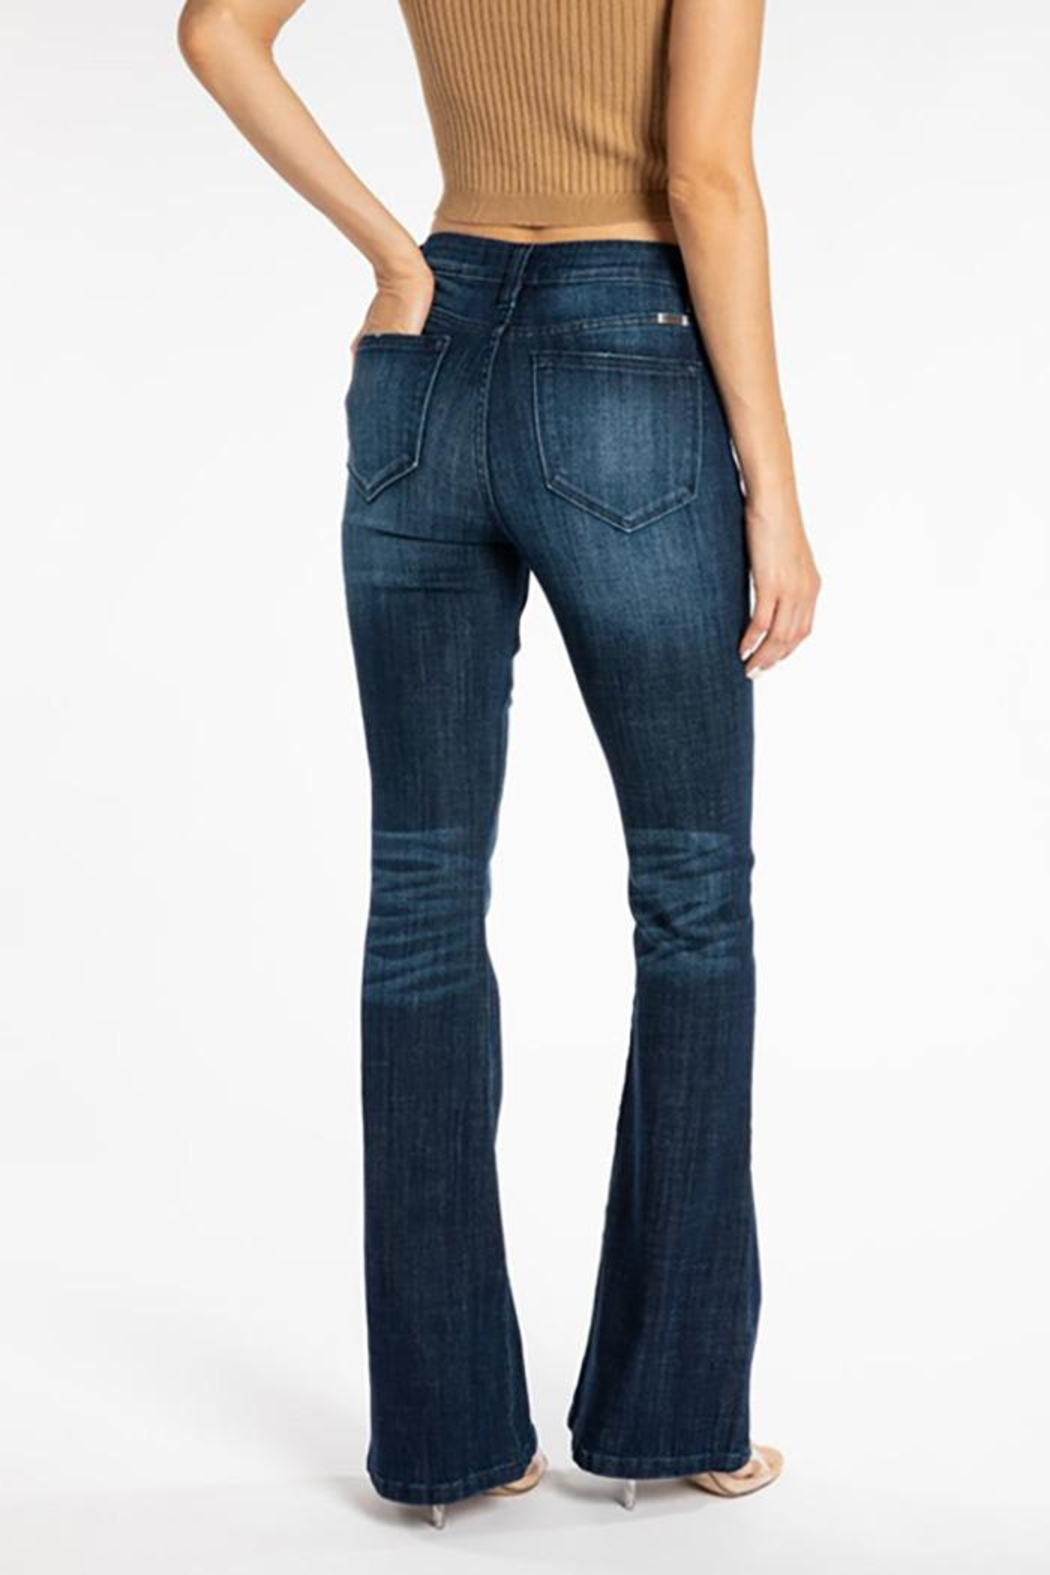 KanCan Mid Rise Flare Jeans - Back Cropped Image